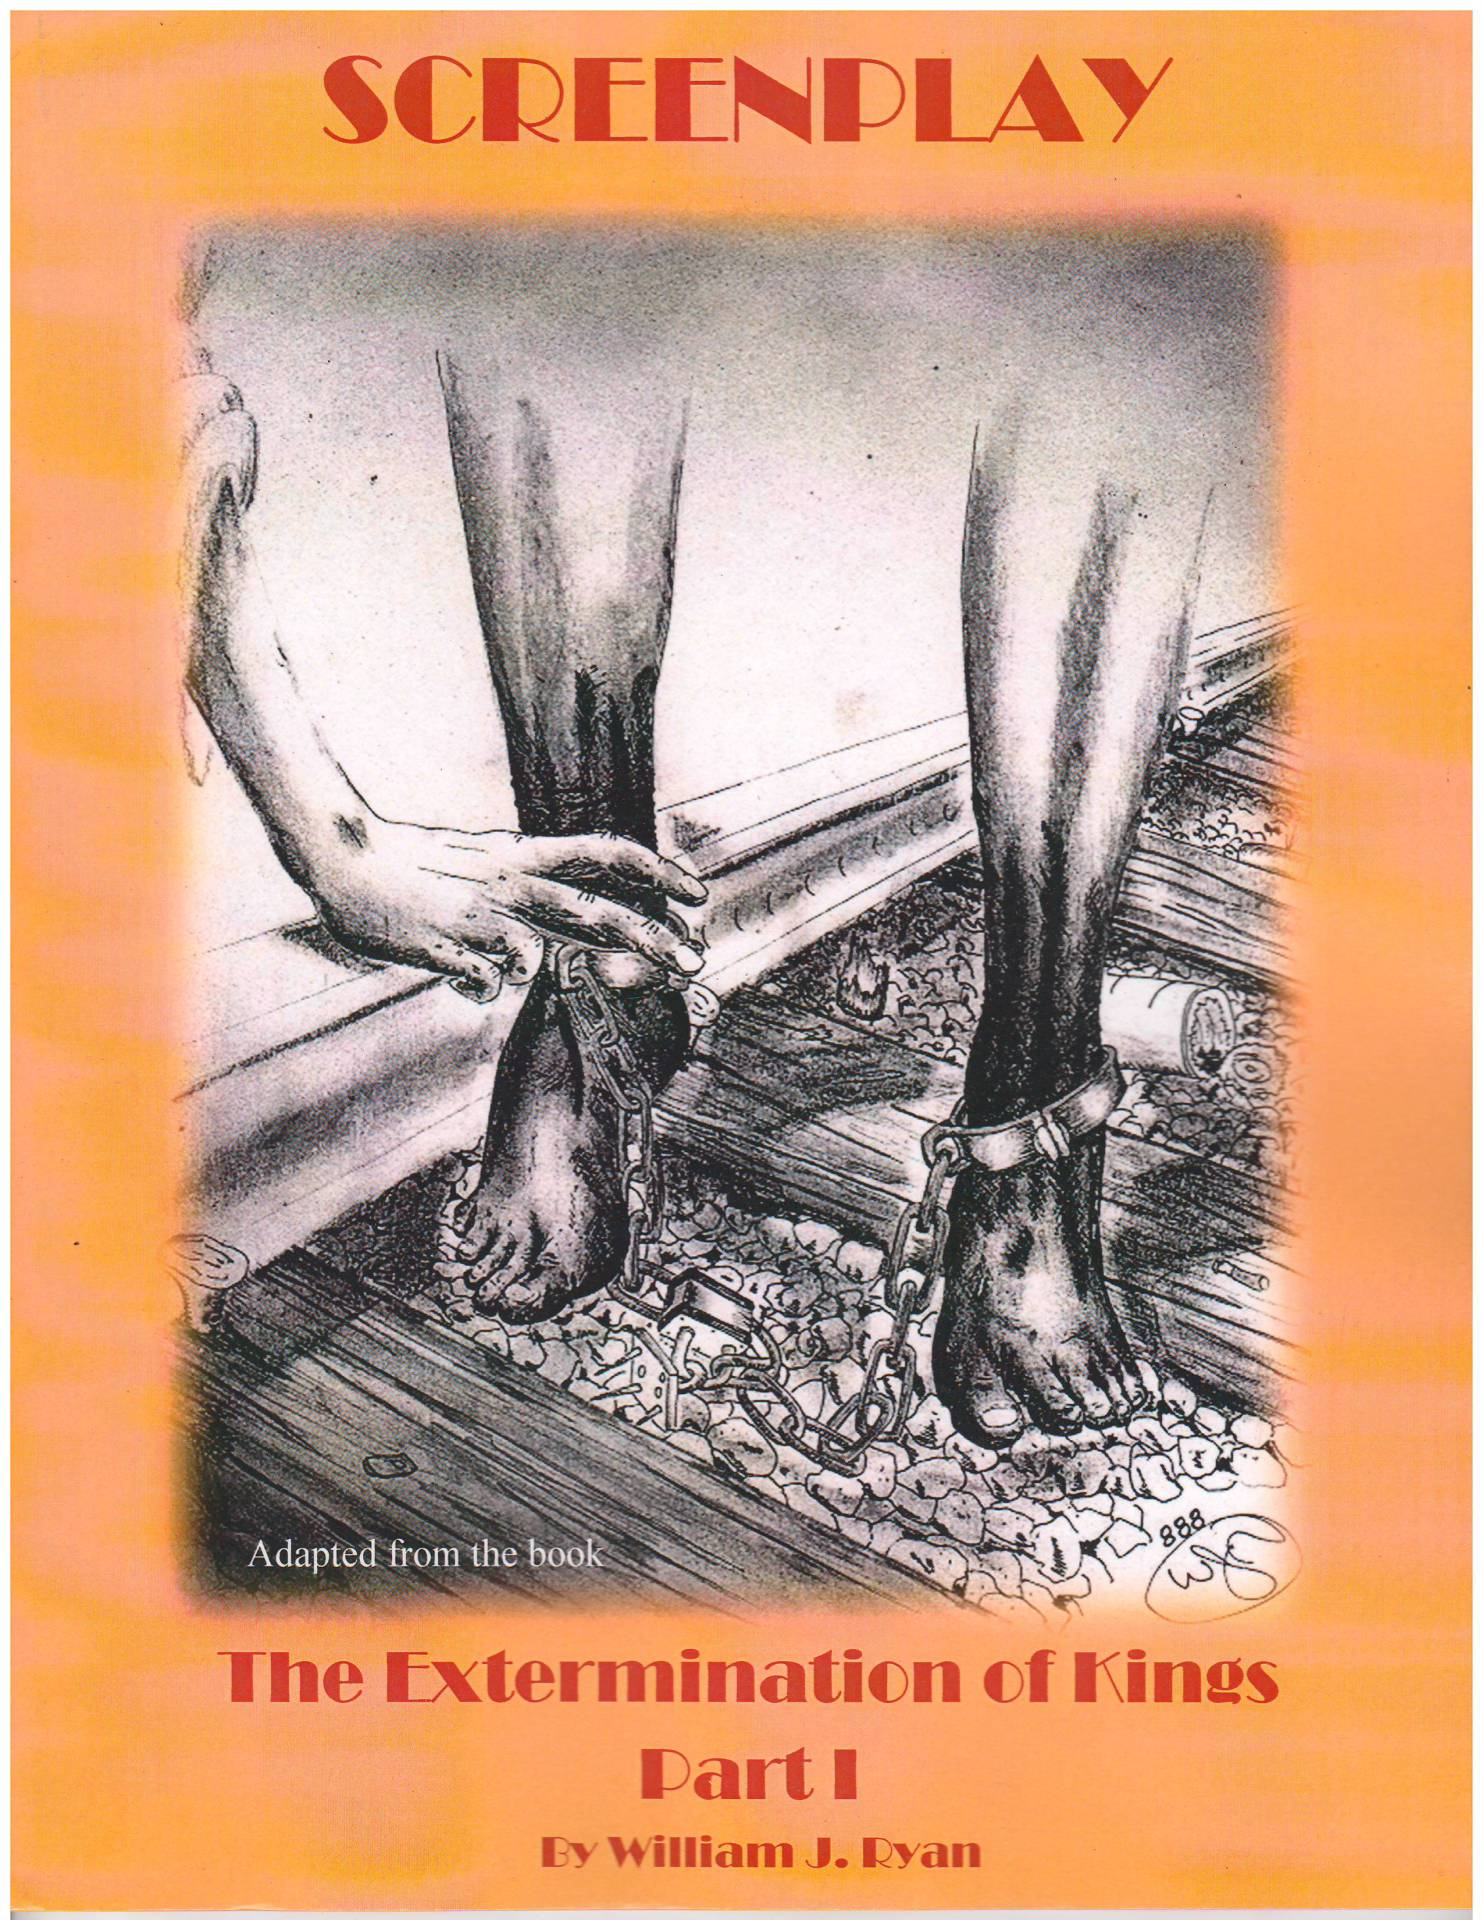 The Extermination of Kings Part I